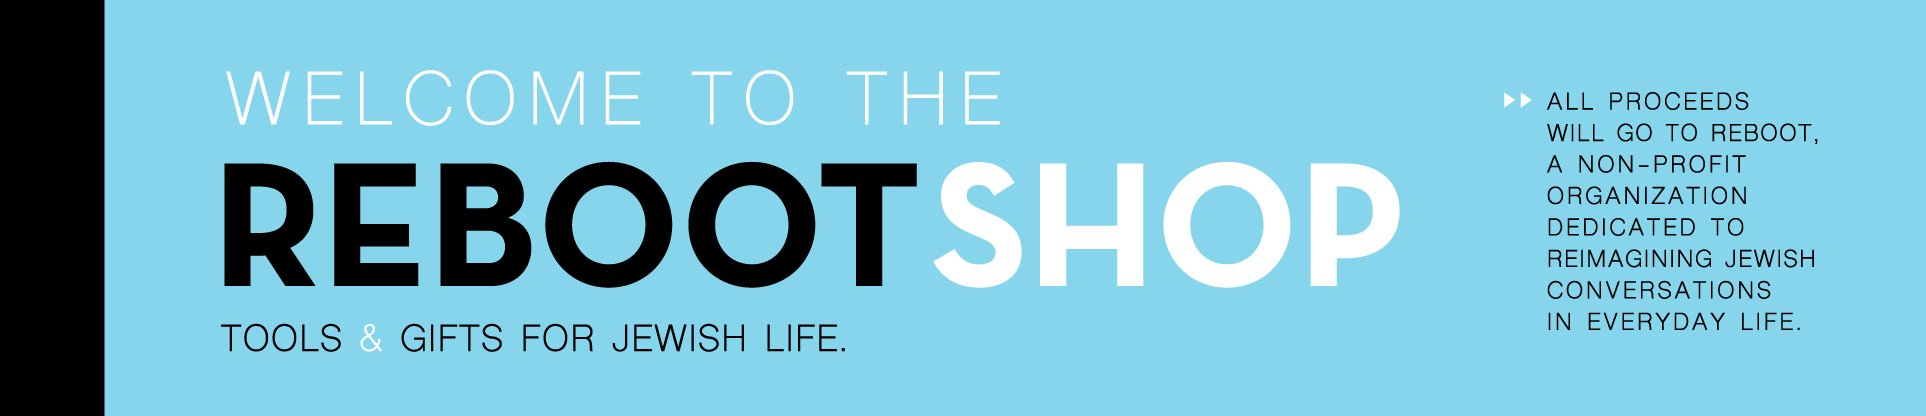 Jewish Gifts: Welcome to Reboot Shop